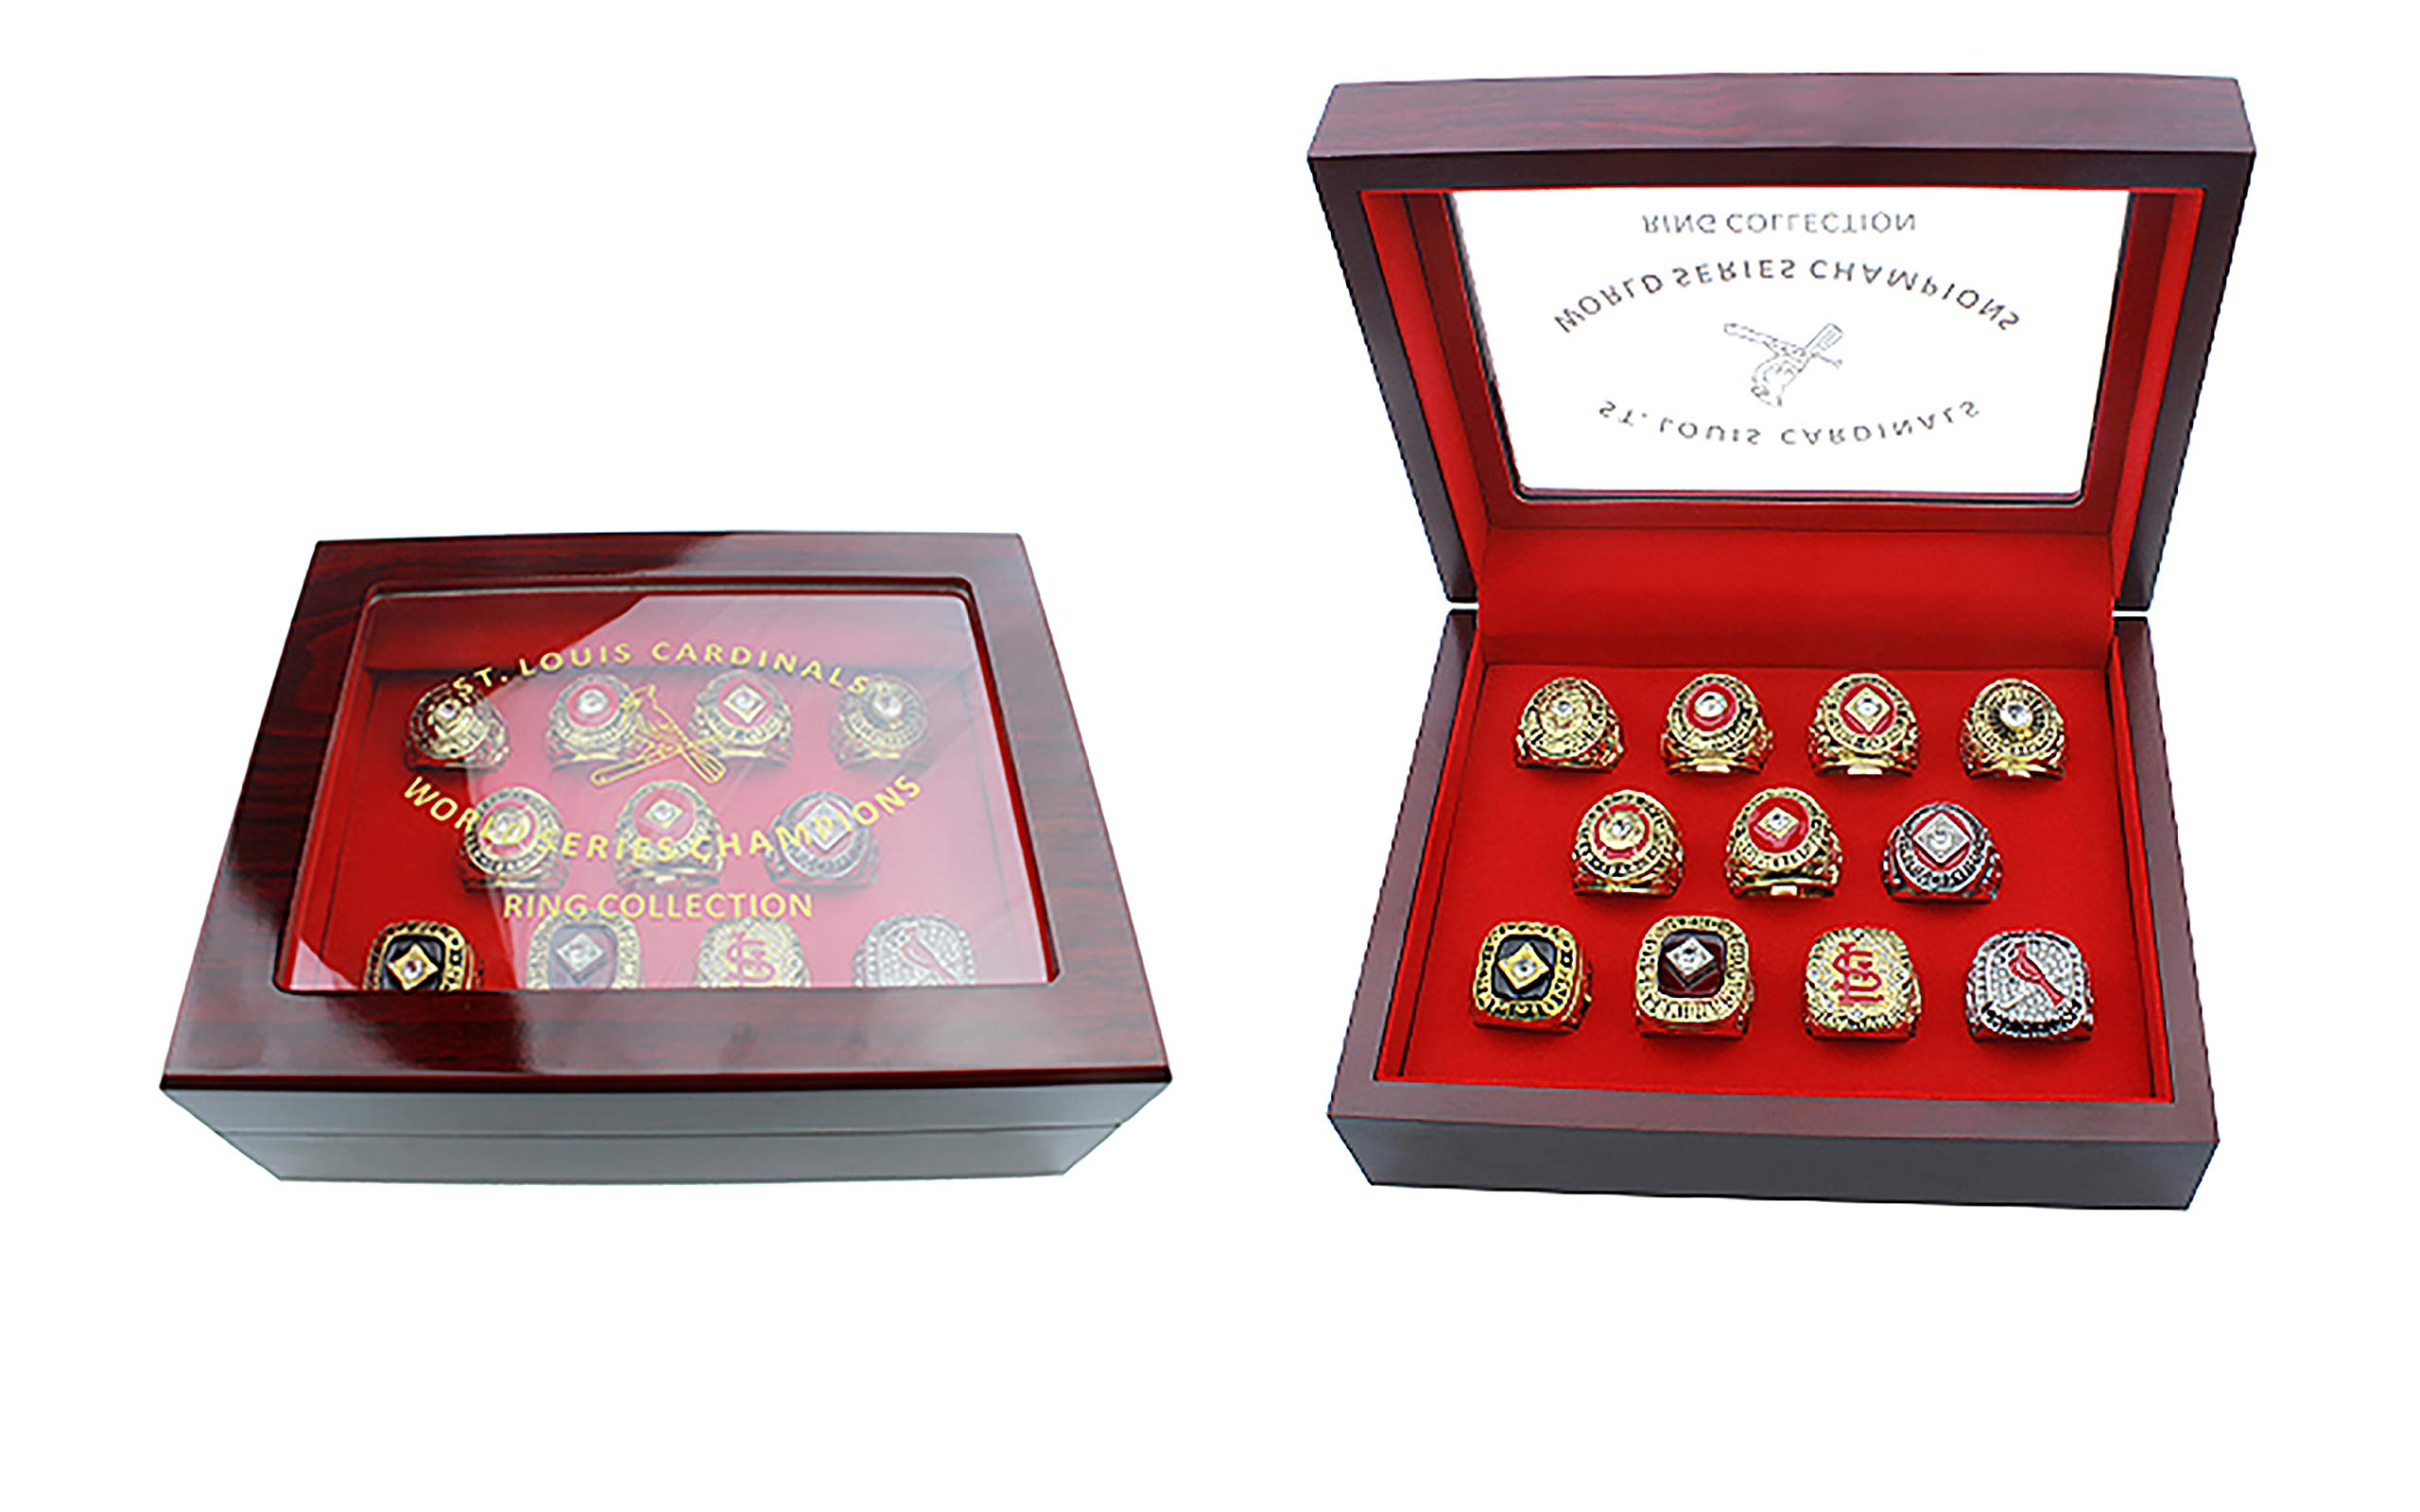 GF-sports store Set of 11 St. Louis Cardinals Championship Replica Ring by Display Box Set- Fashion Gorgeous Collectible Jewelry